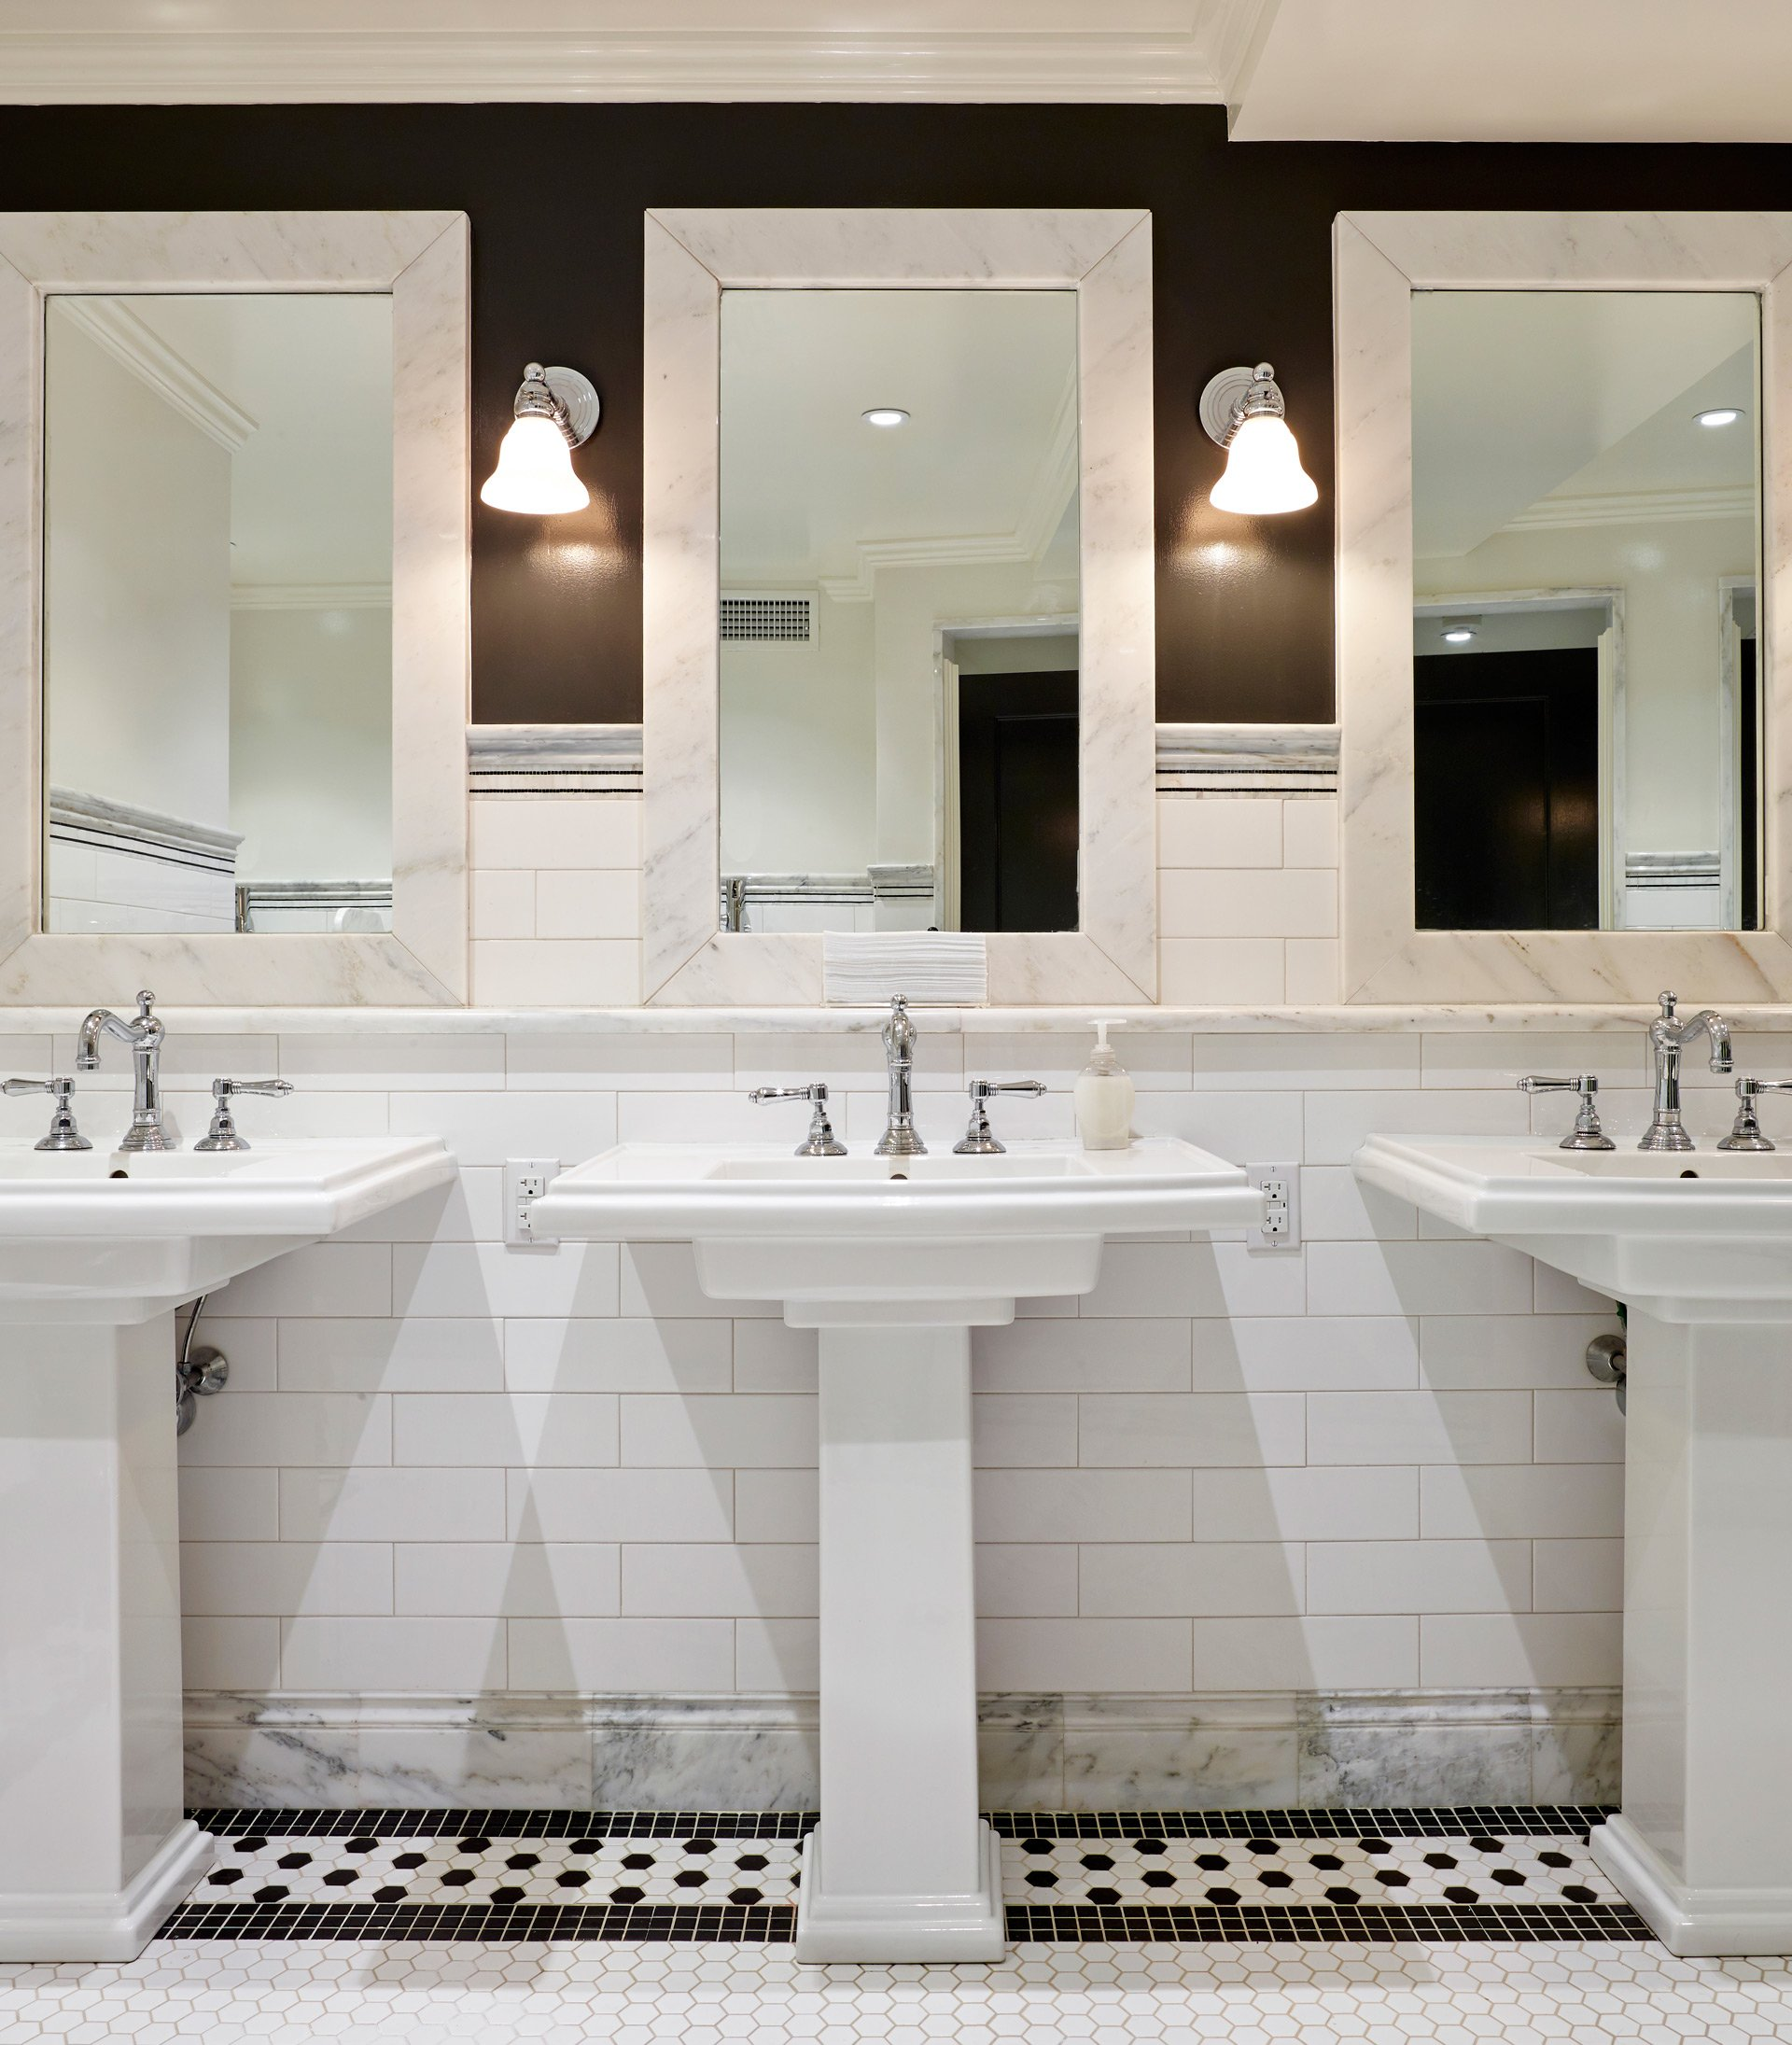 Murphy-Brothers-contracting-commercial-Apawamis-Club-interior-Bathroom-02